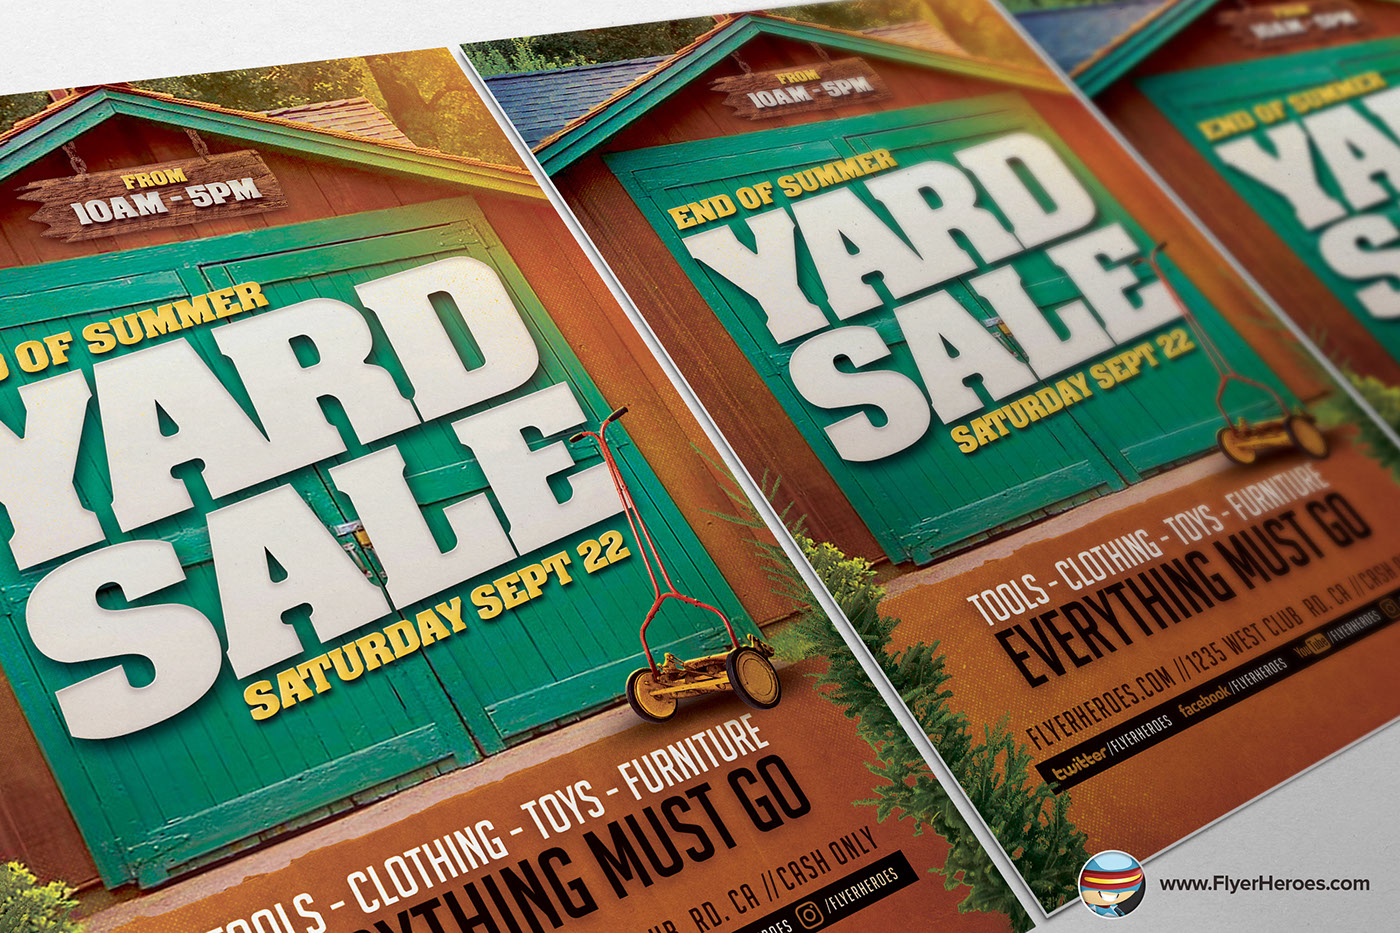 end of summer yard flyer template on behance end of summer yard flyer template is a premium photoshop psd flyer poster template designed by flyerheroes to be used photoshop cs4 and higher